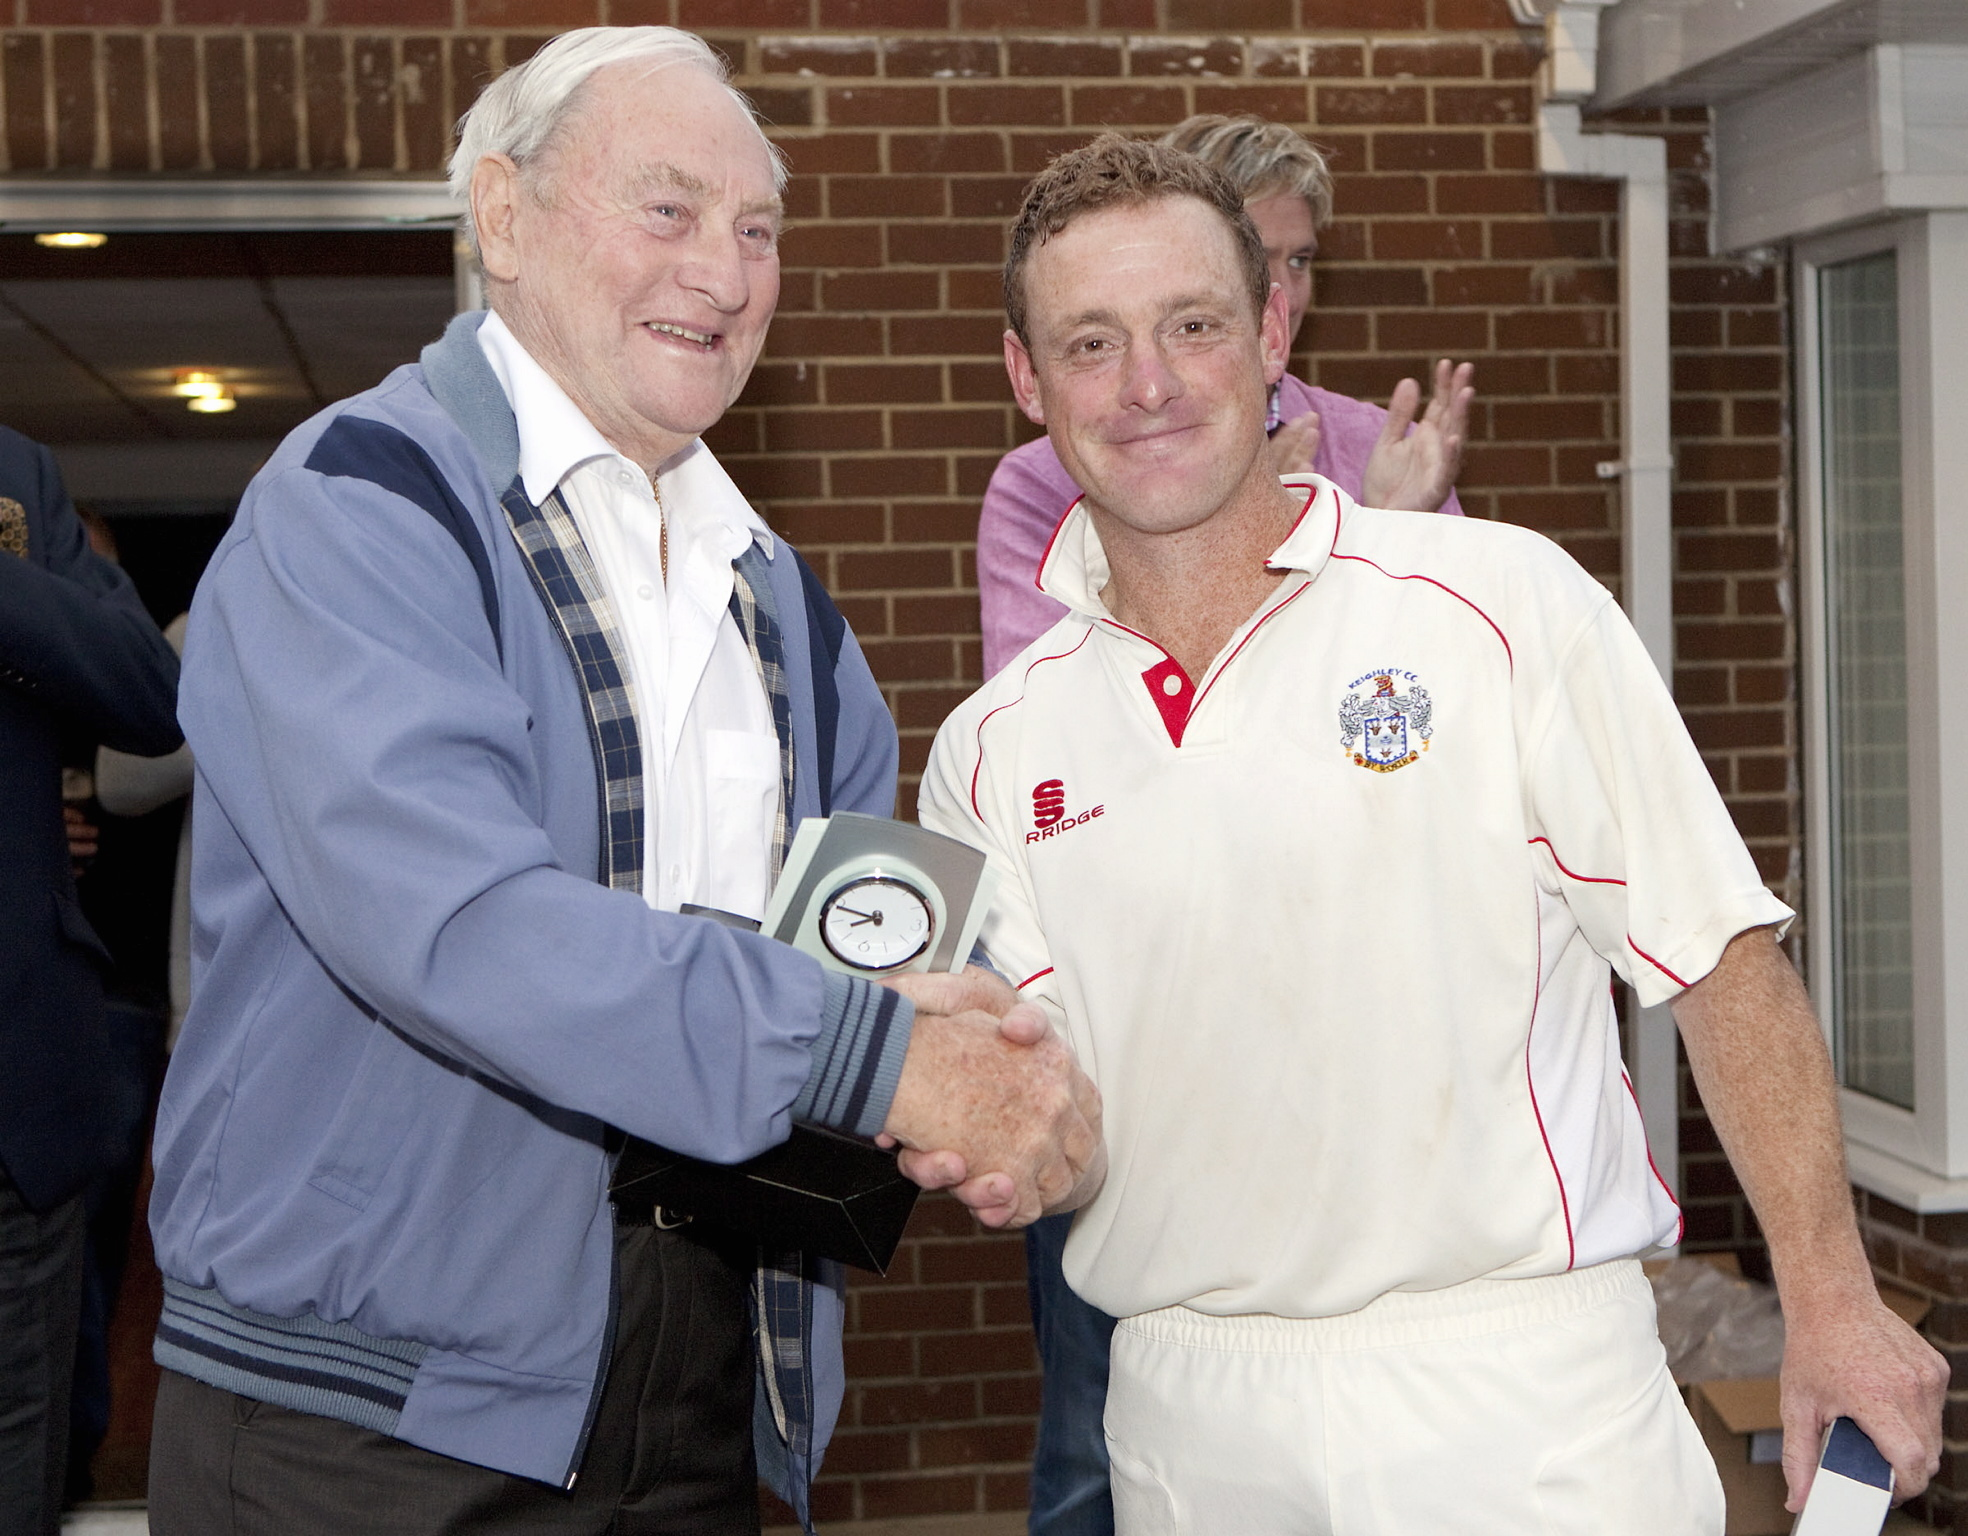 Priestley Shield final 2012 Keighley 2nd v Woodlands 2nd Richard Wood man of match award from Ray Illingworth (9258301)